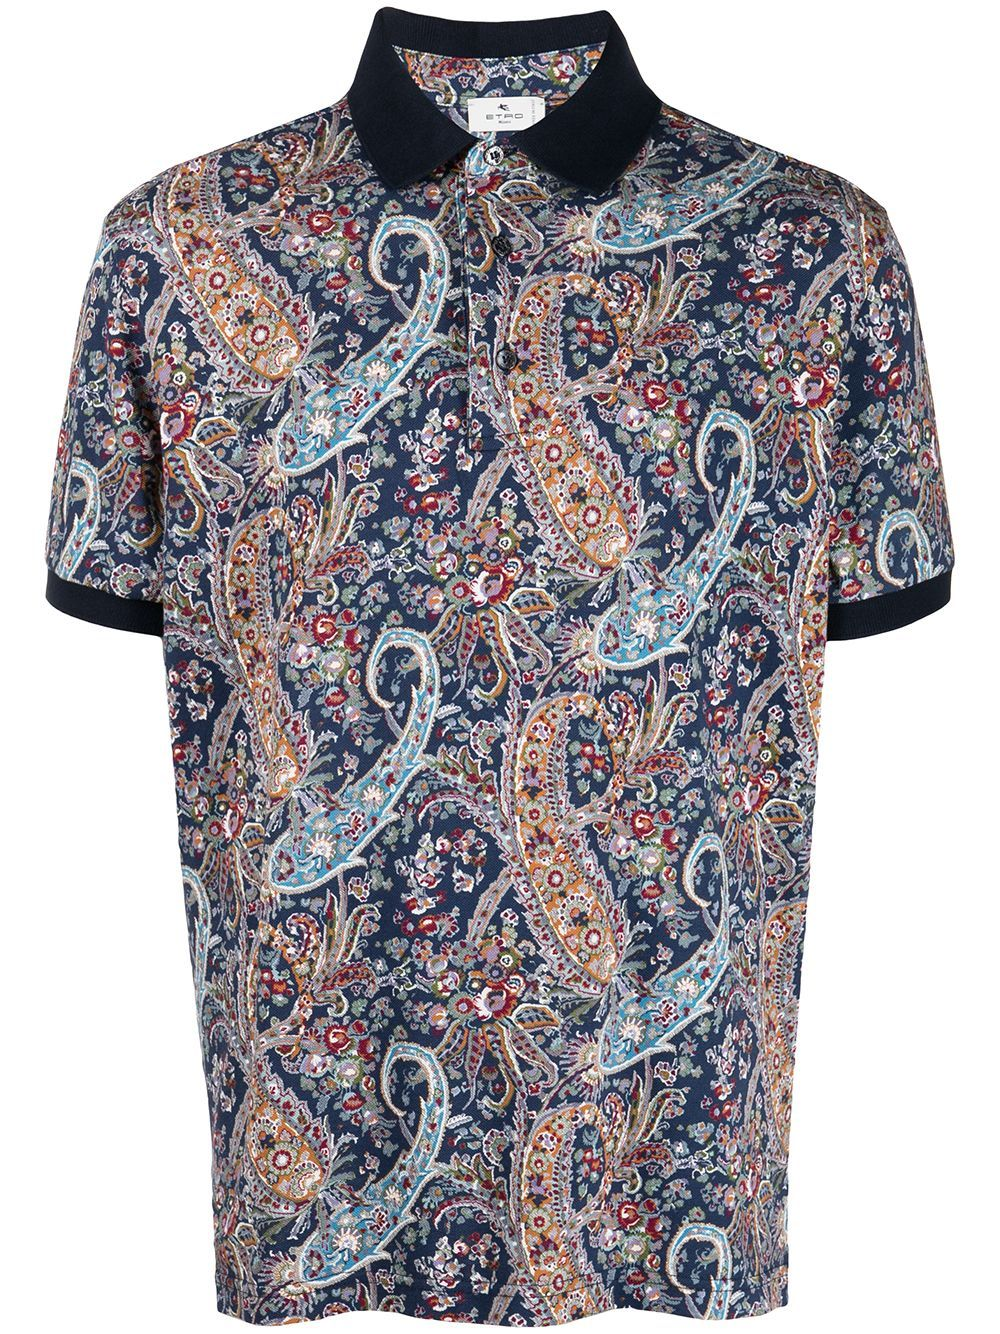 Etro ETRO MEN'S 1Y8004081200 MULTICOLOR COTTON POLO SHIRT